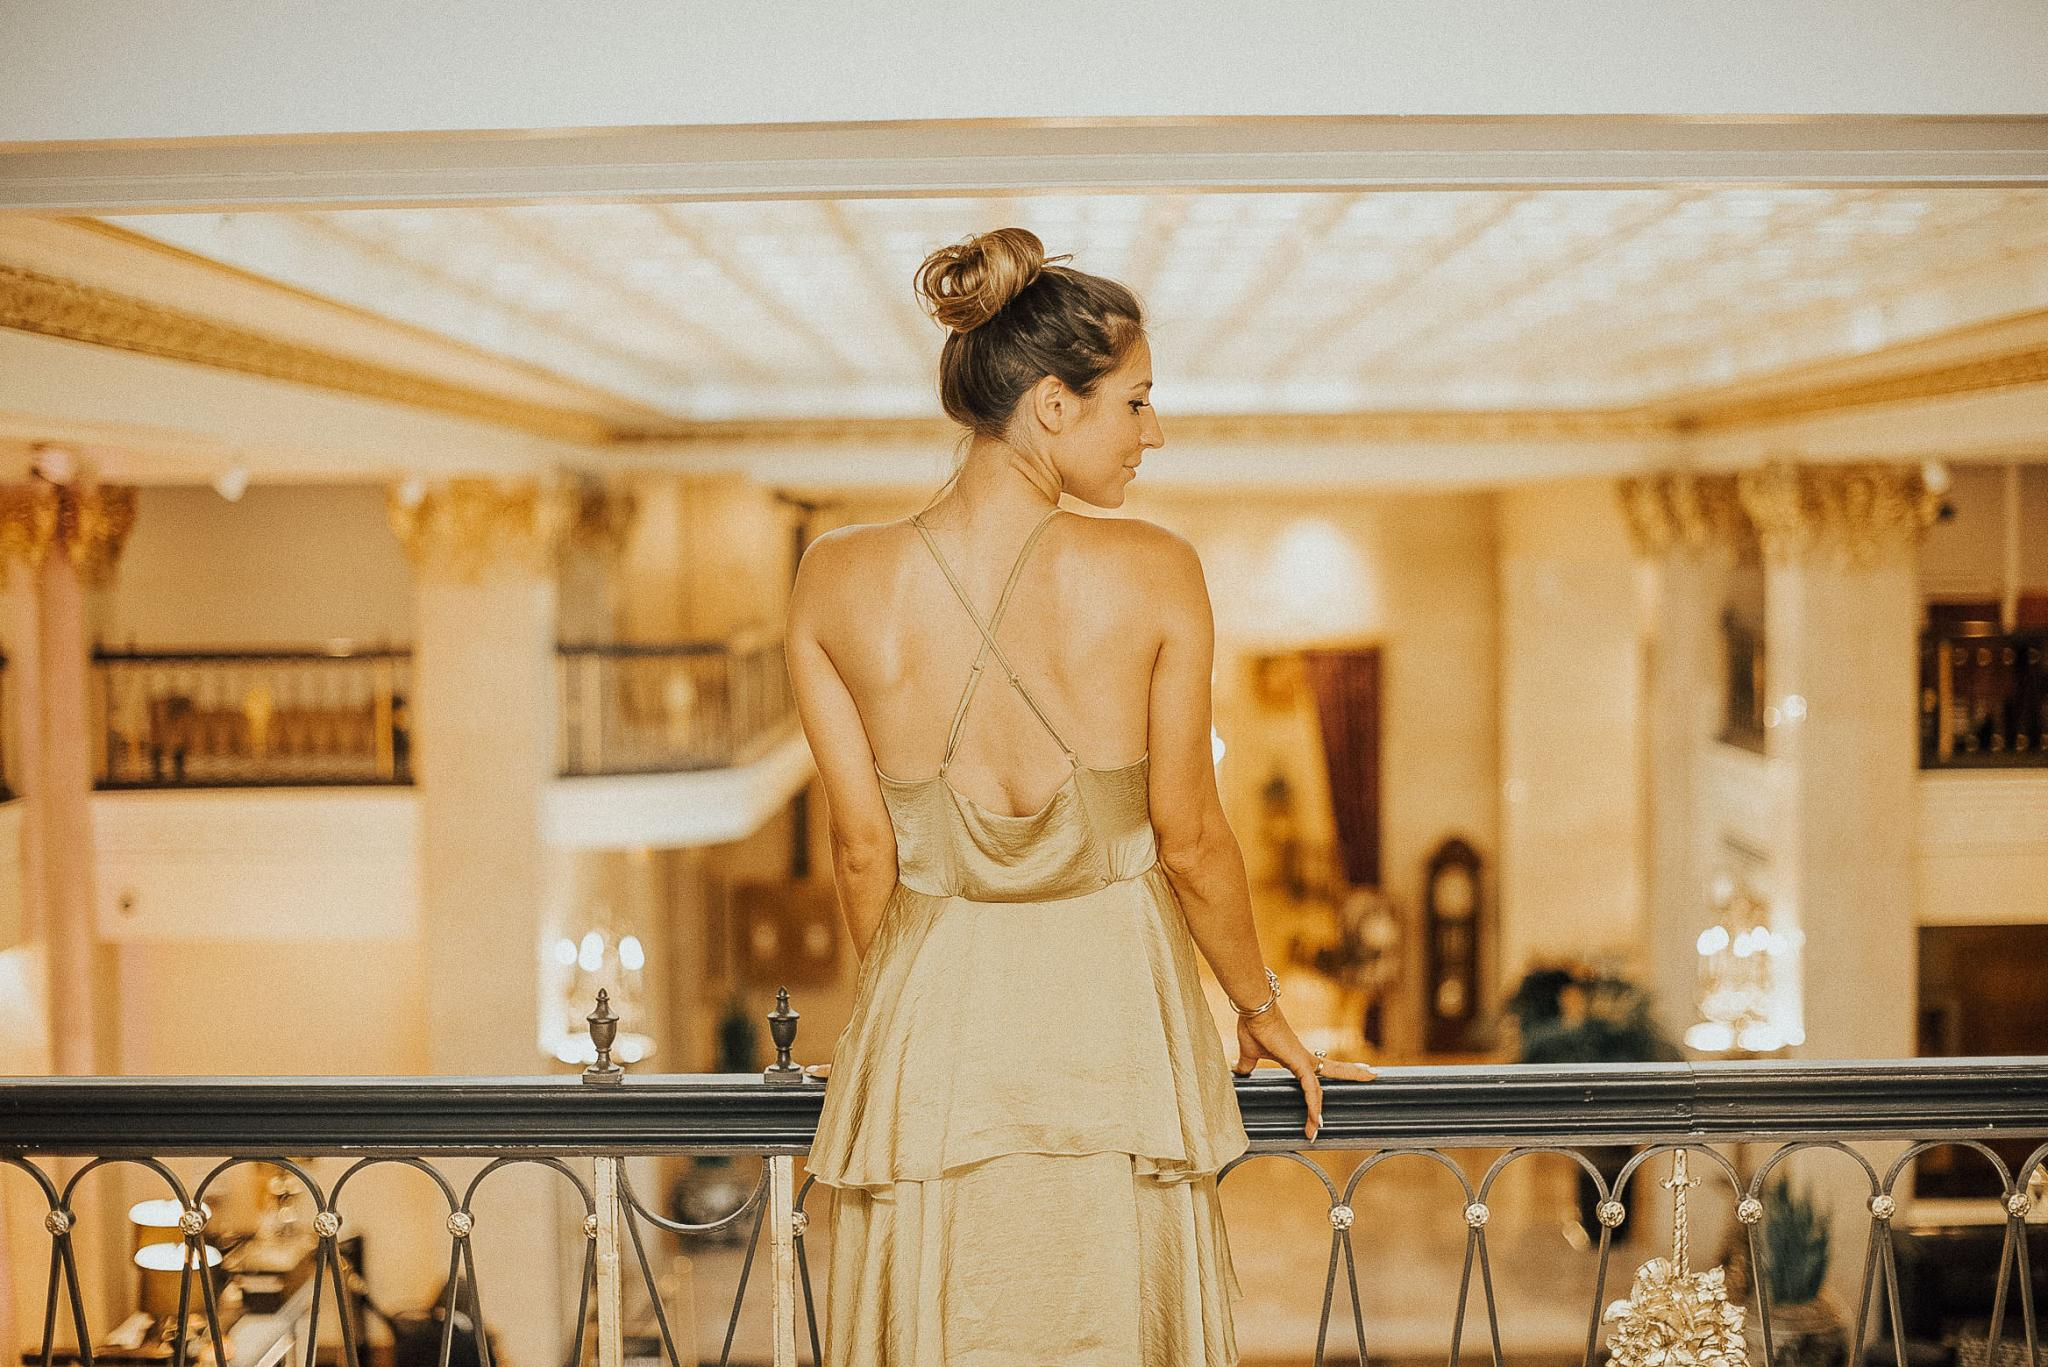 Fashion, Hotel, Travel, Traveler, Travel Blogger, Low back dress, backless, vintage, silk evening gown, louboutin